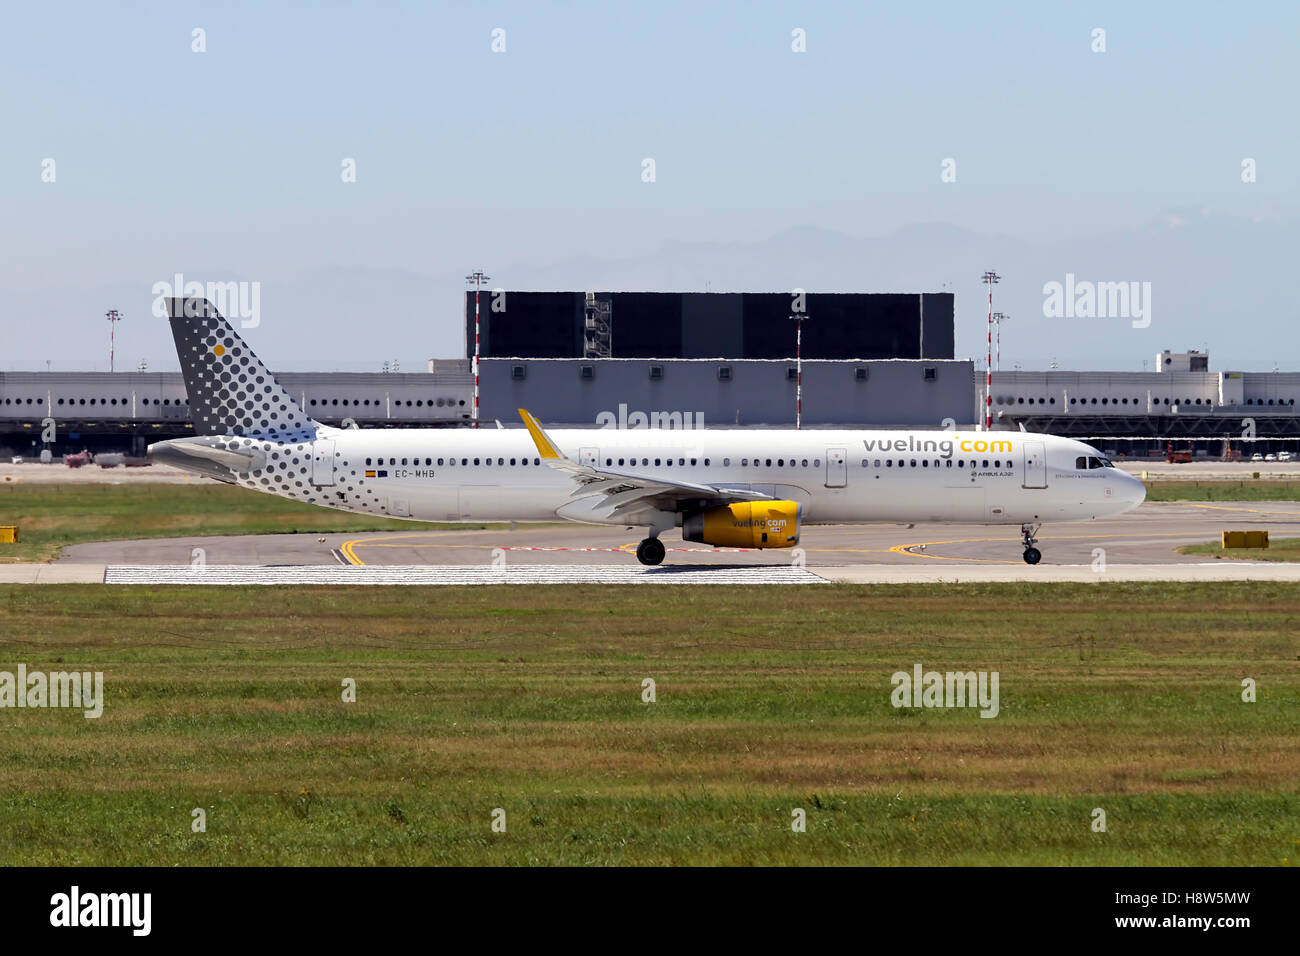 Vueling Airlines Airbus A321 at Milan - Malpensa (MXP / LIMC) Italy - Stock Image